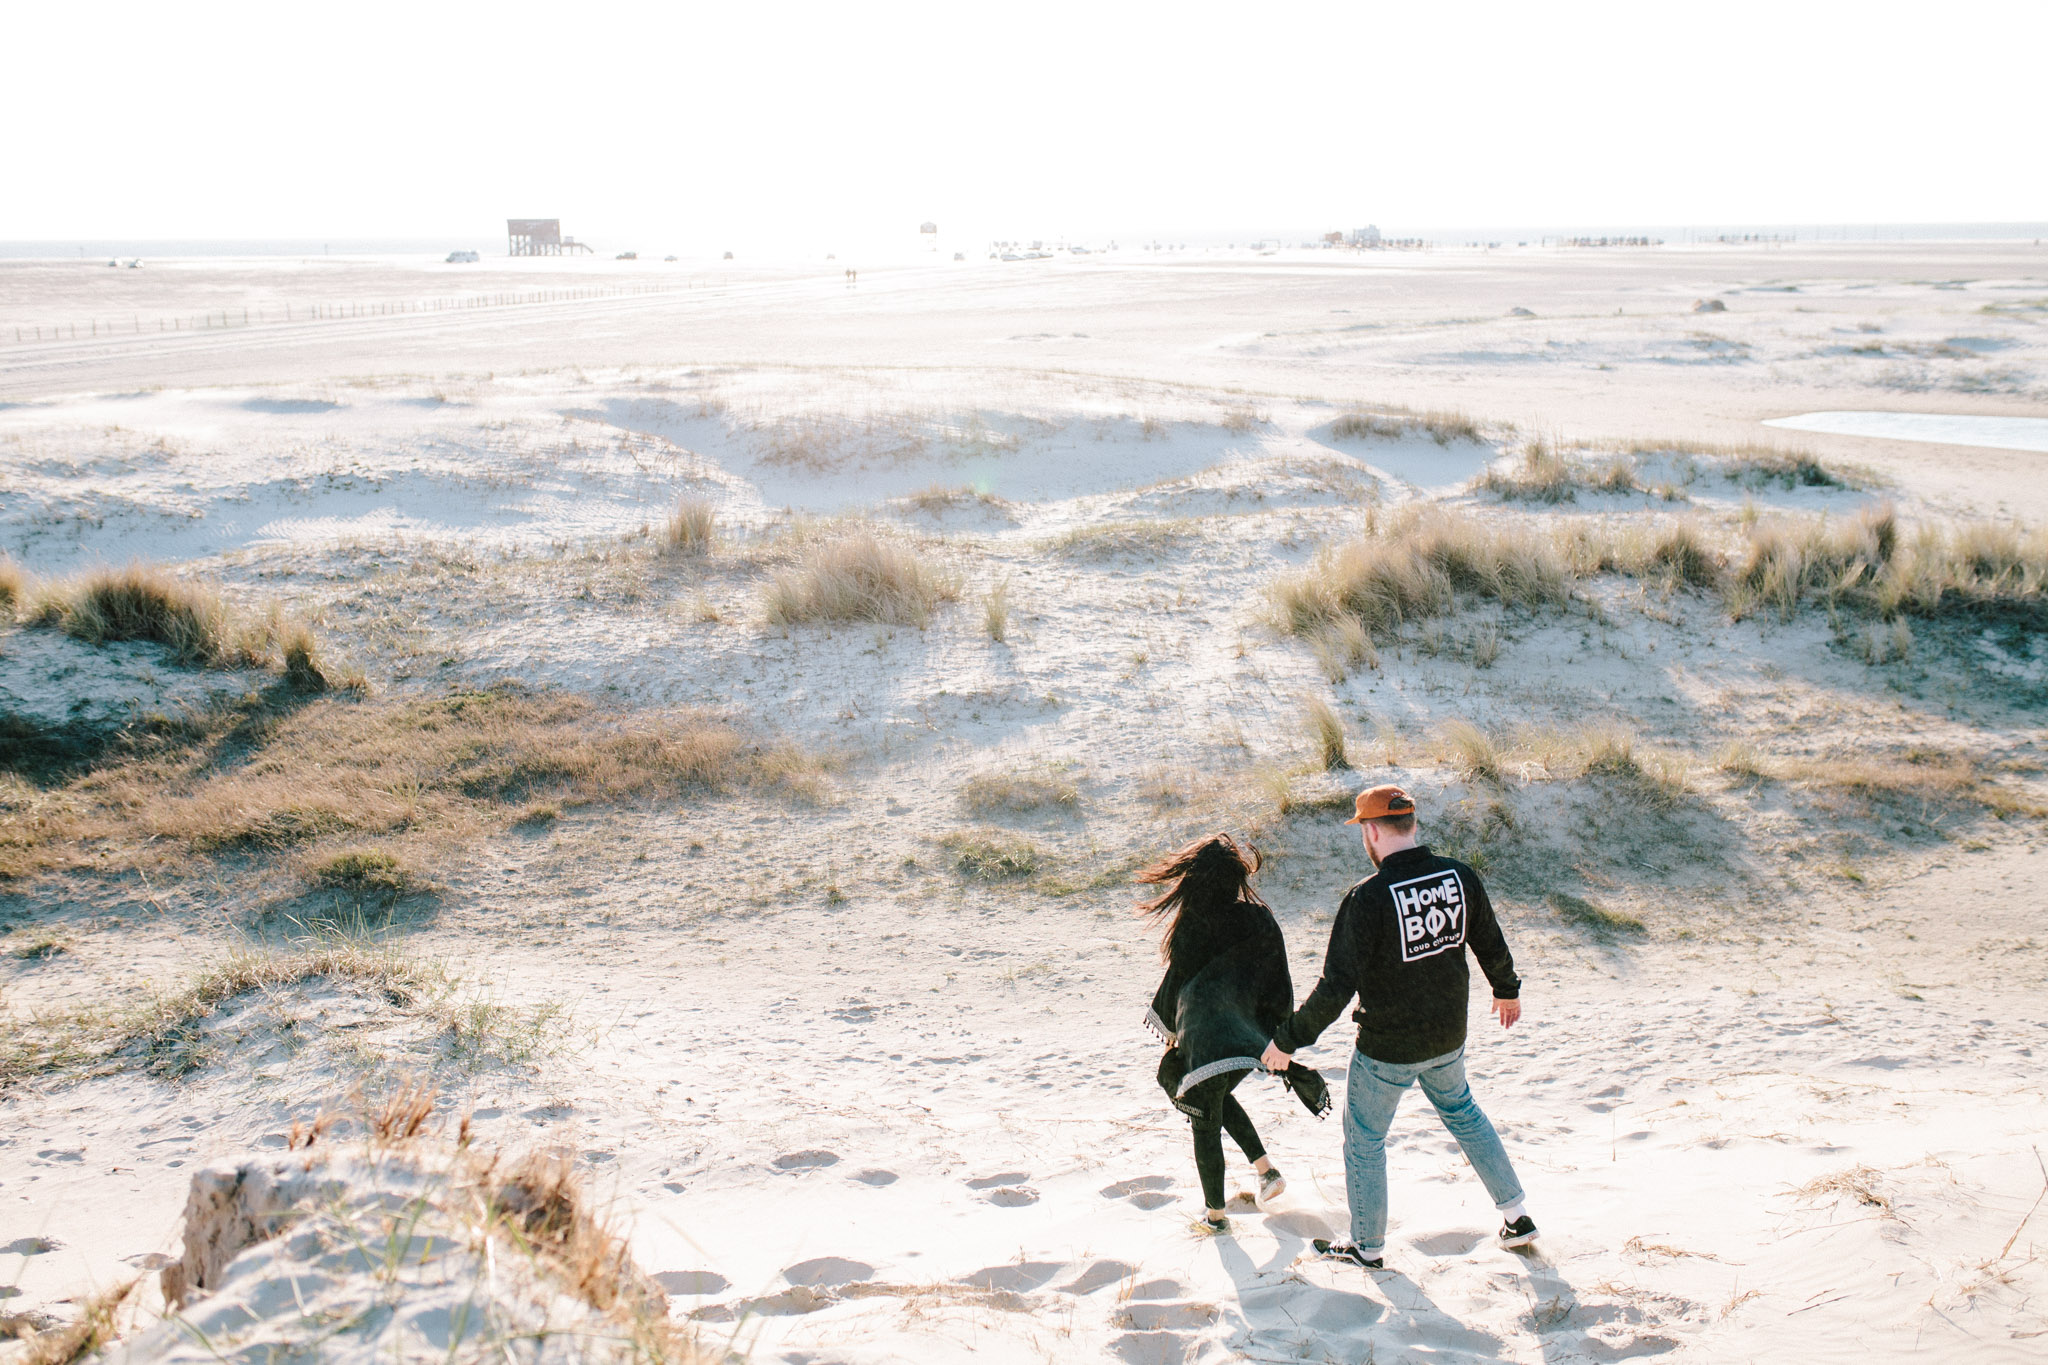 Sankt-Peter-Ording-Engagement-Pia-Anna-Christian-Wedding-Photography-KT-10.jpg